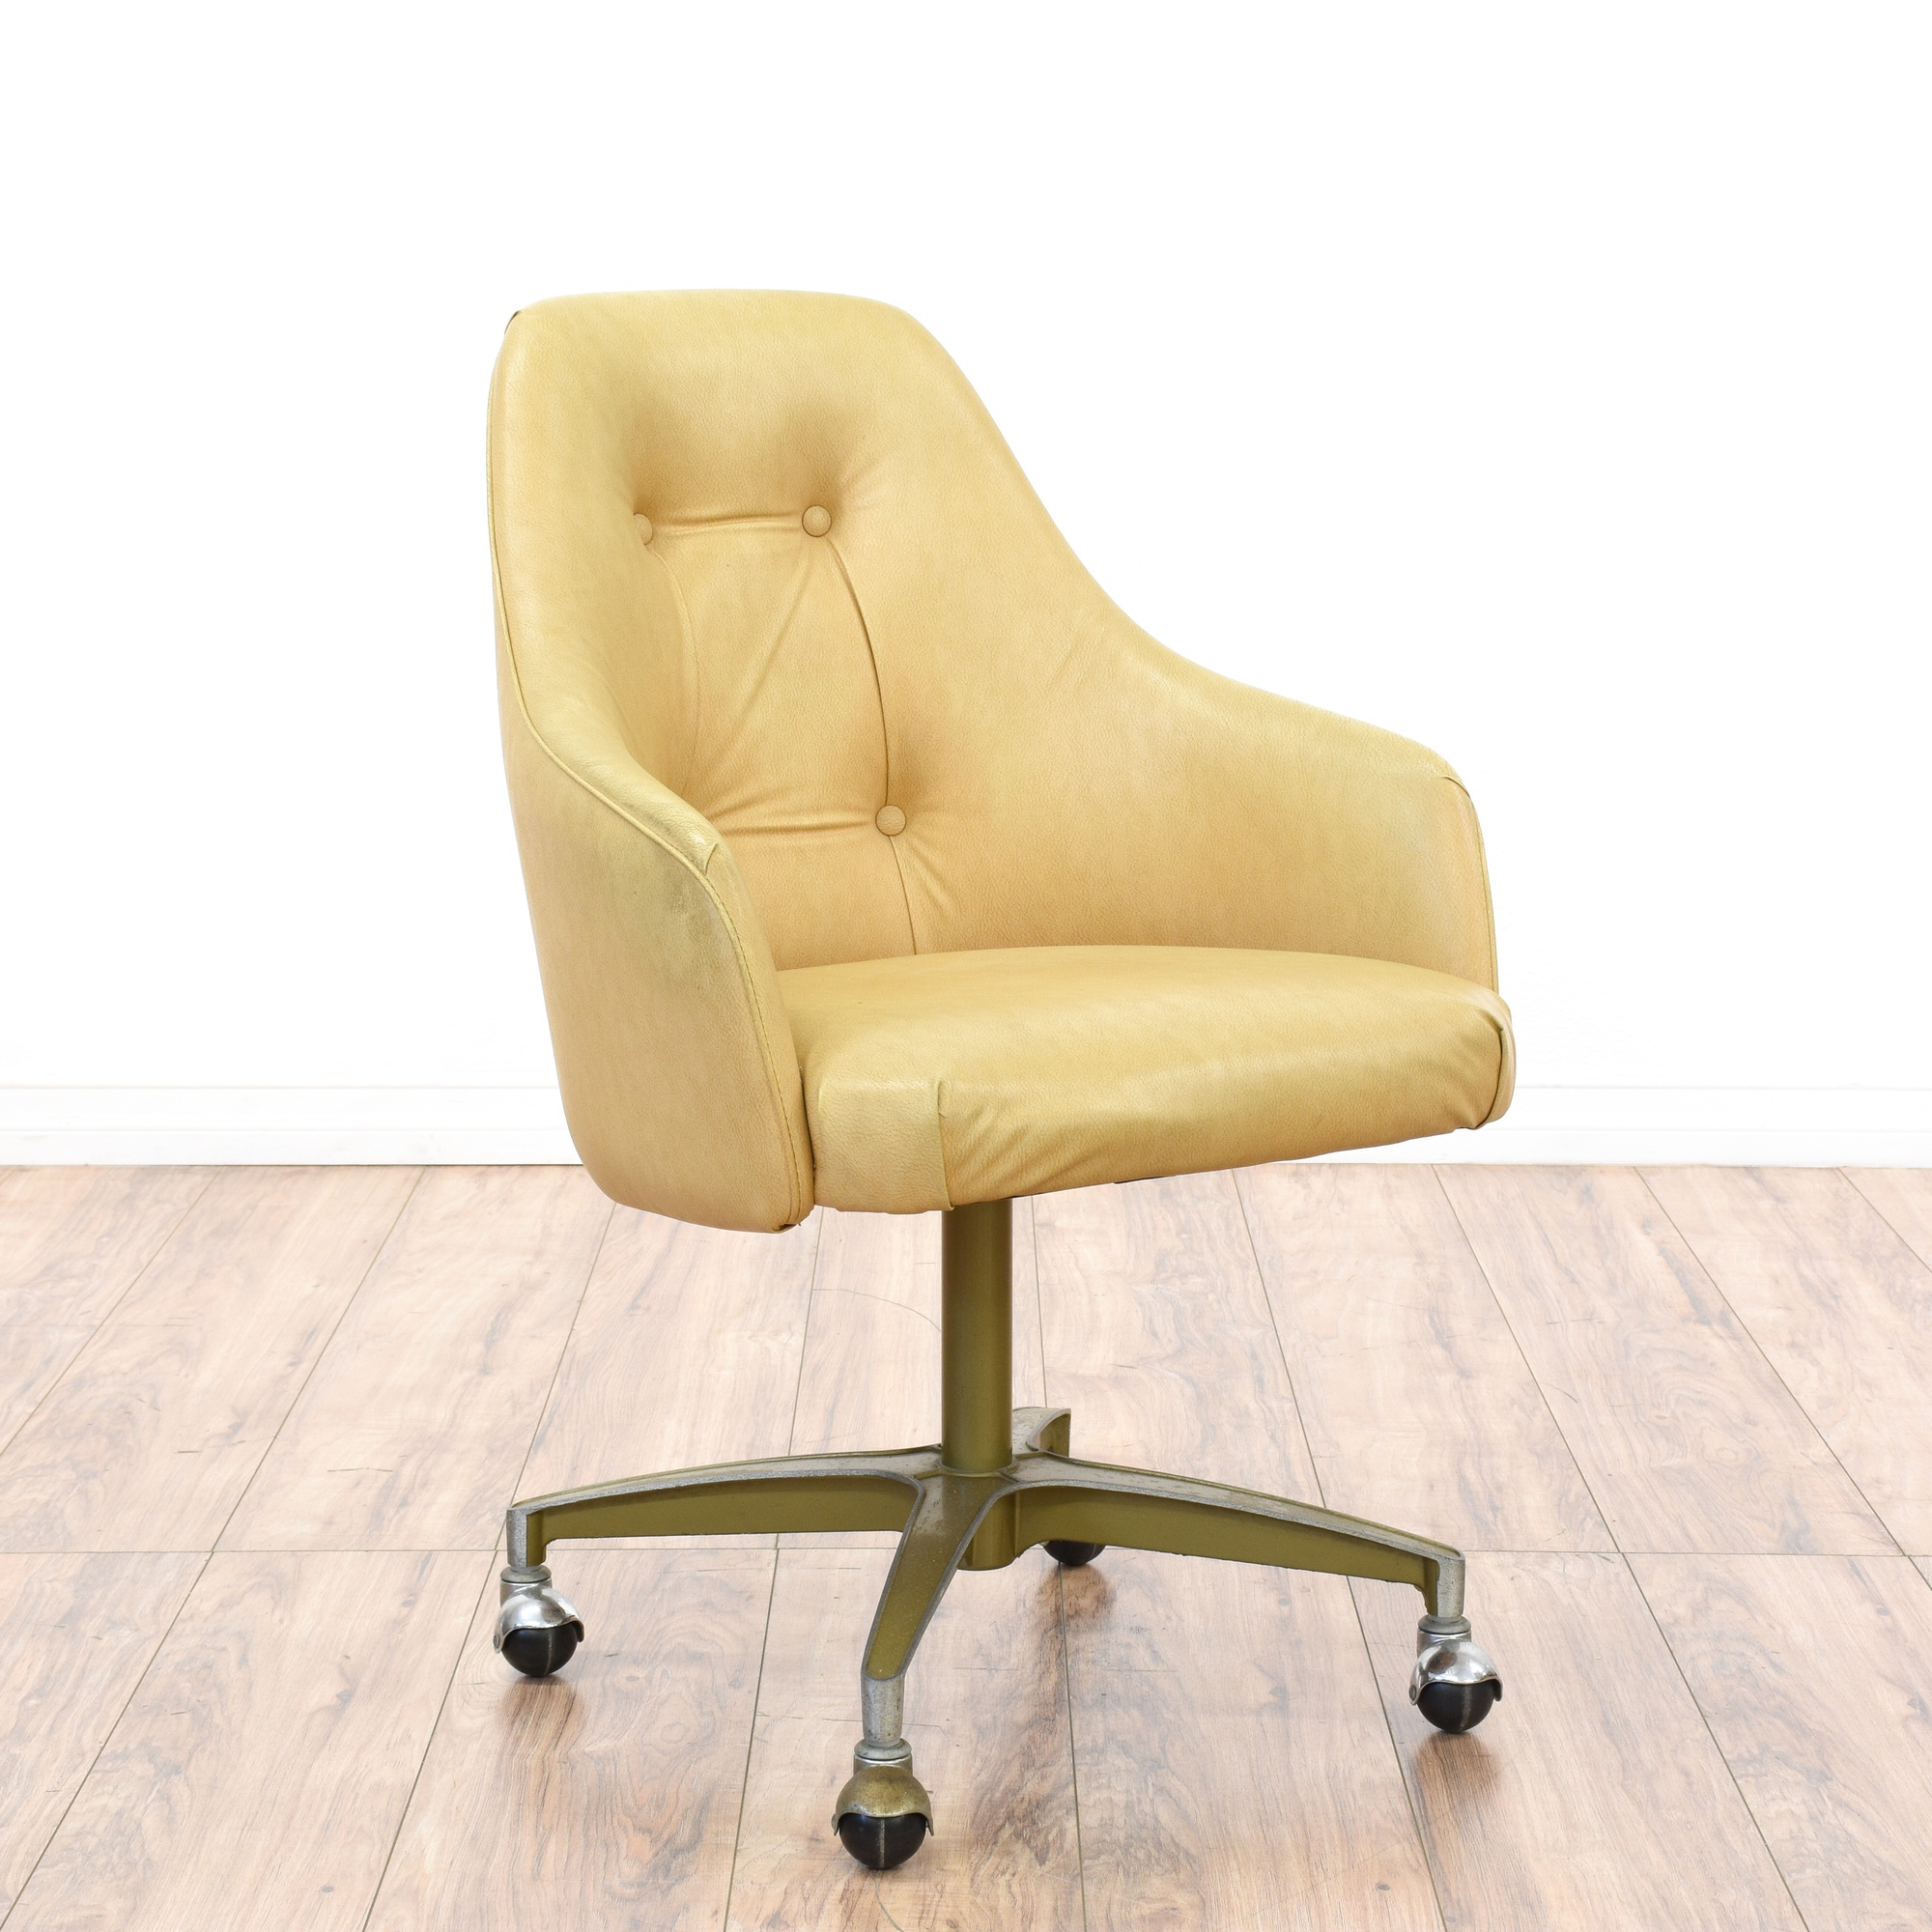 Mid Century Modernist High Back Or Desk Chair W New: Mid Century Modern Beige Vinyl Office Chair